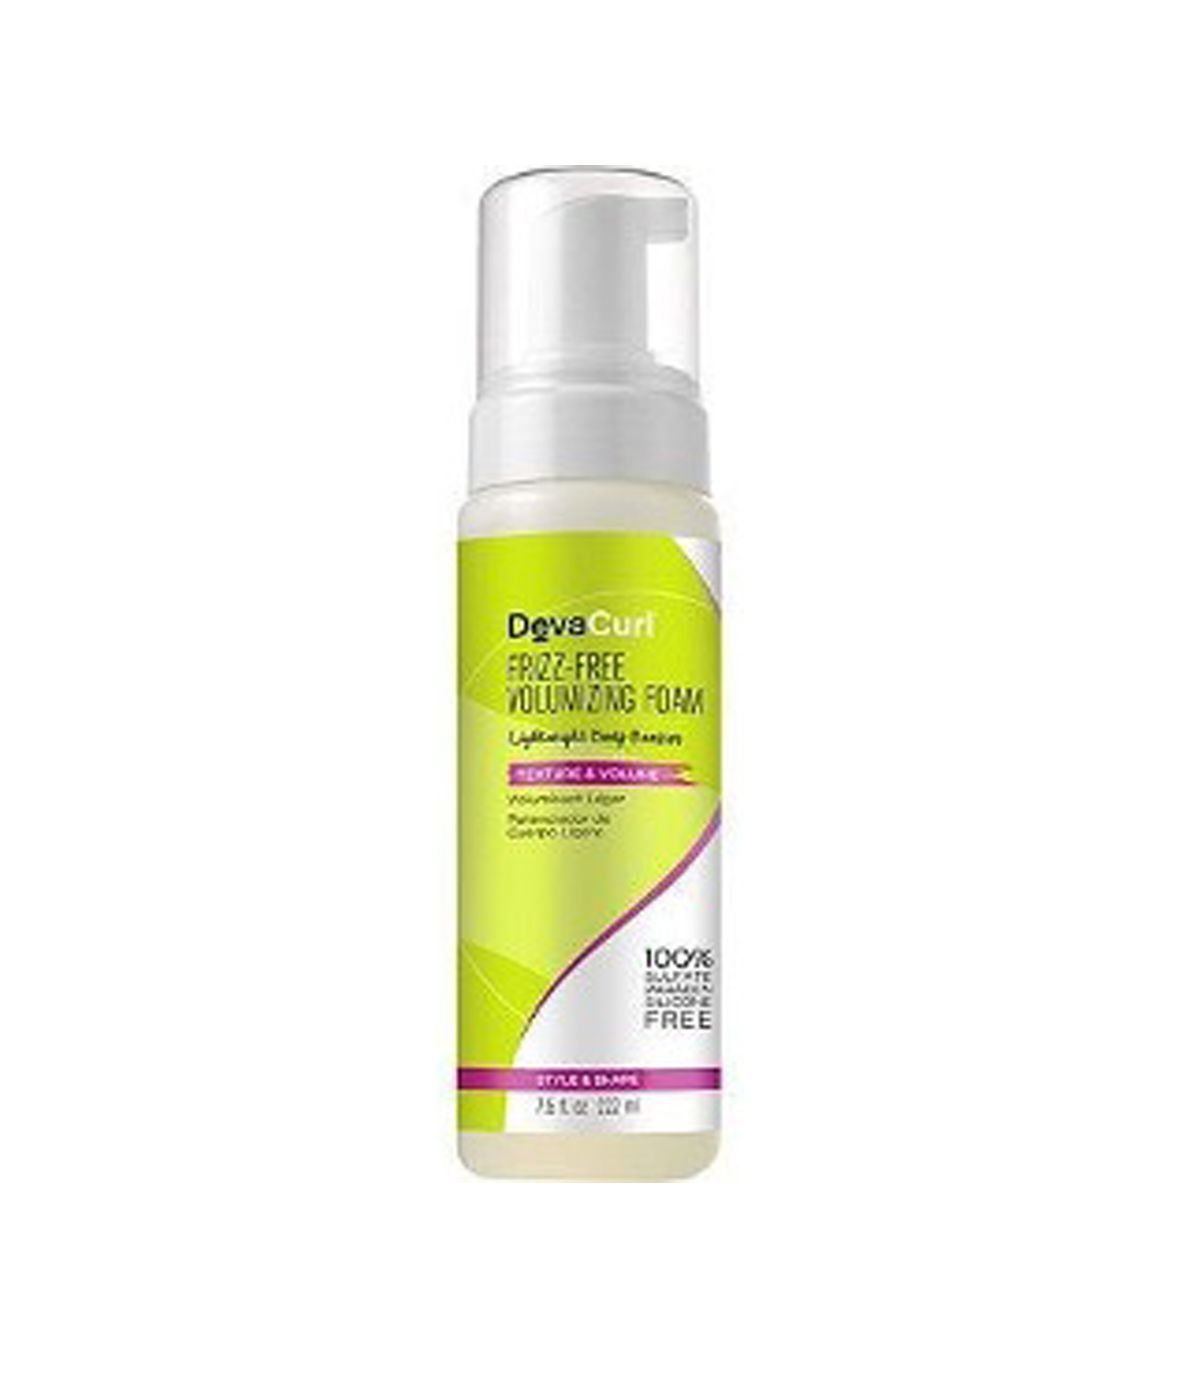 Frizz-Free Volumizing Foam DevaCurl 150ml